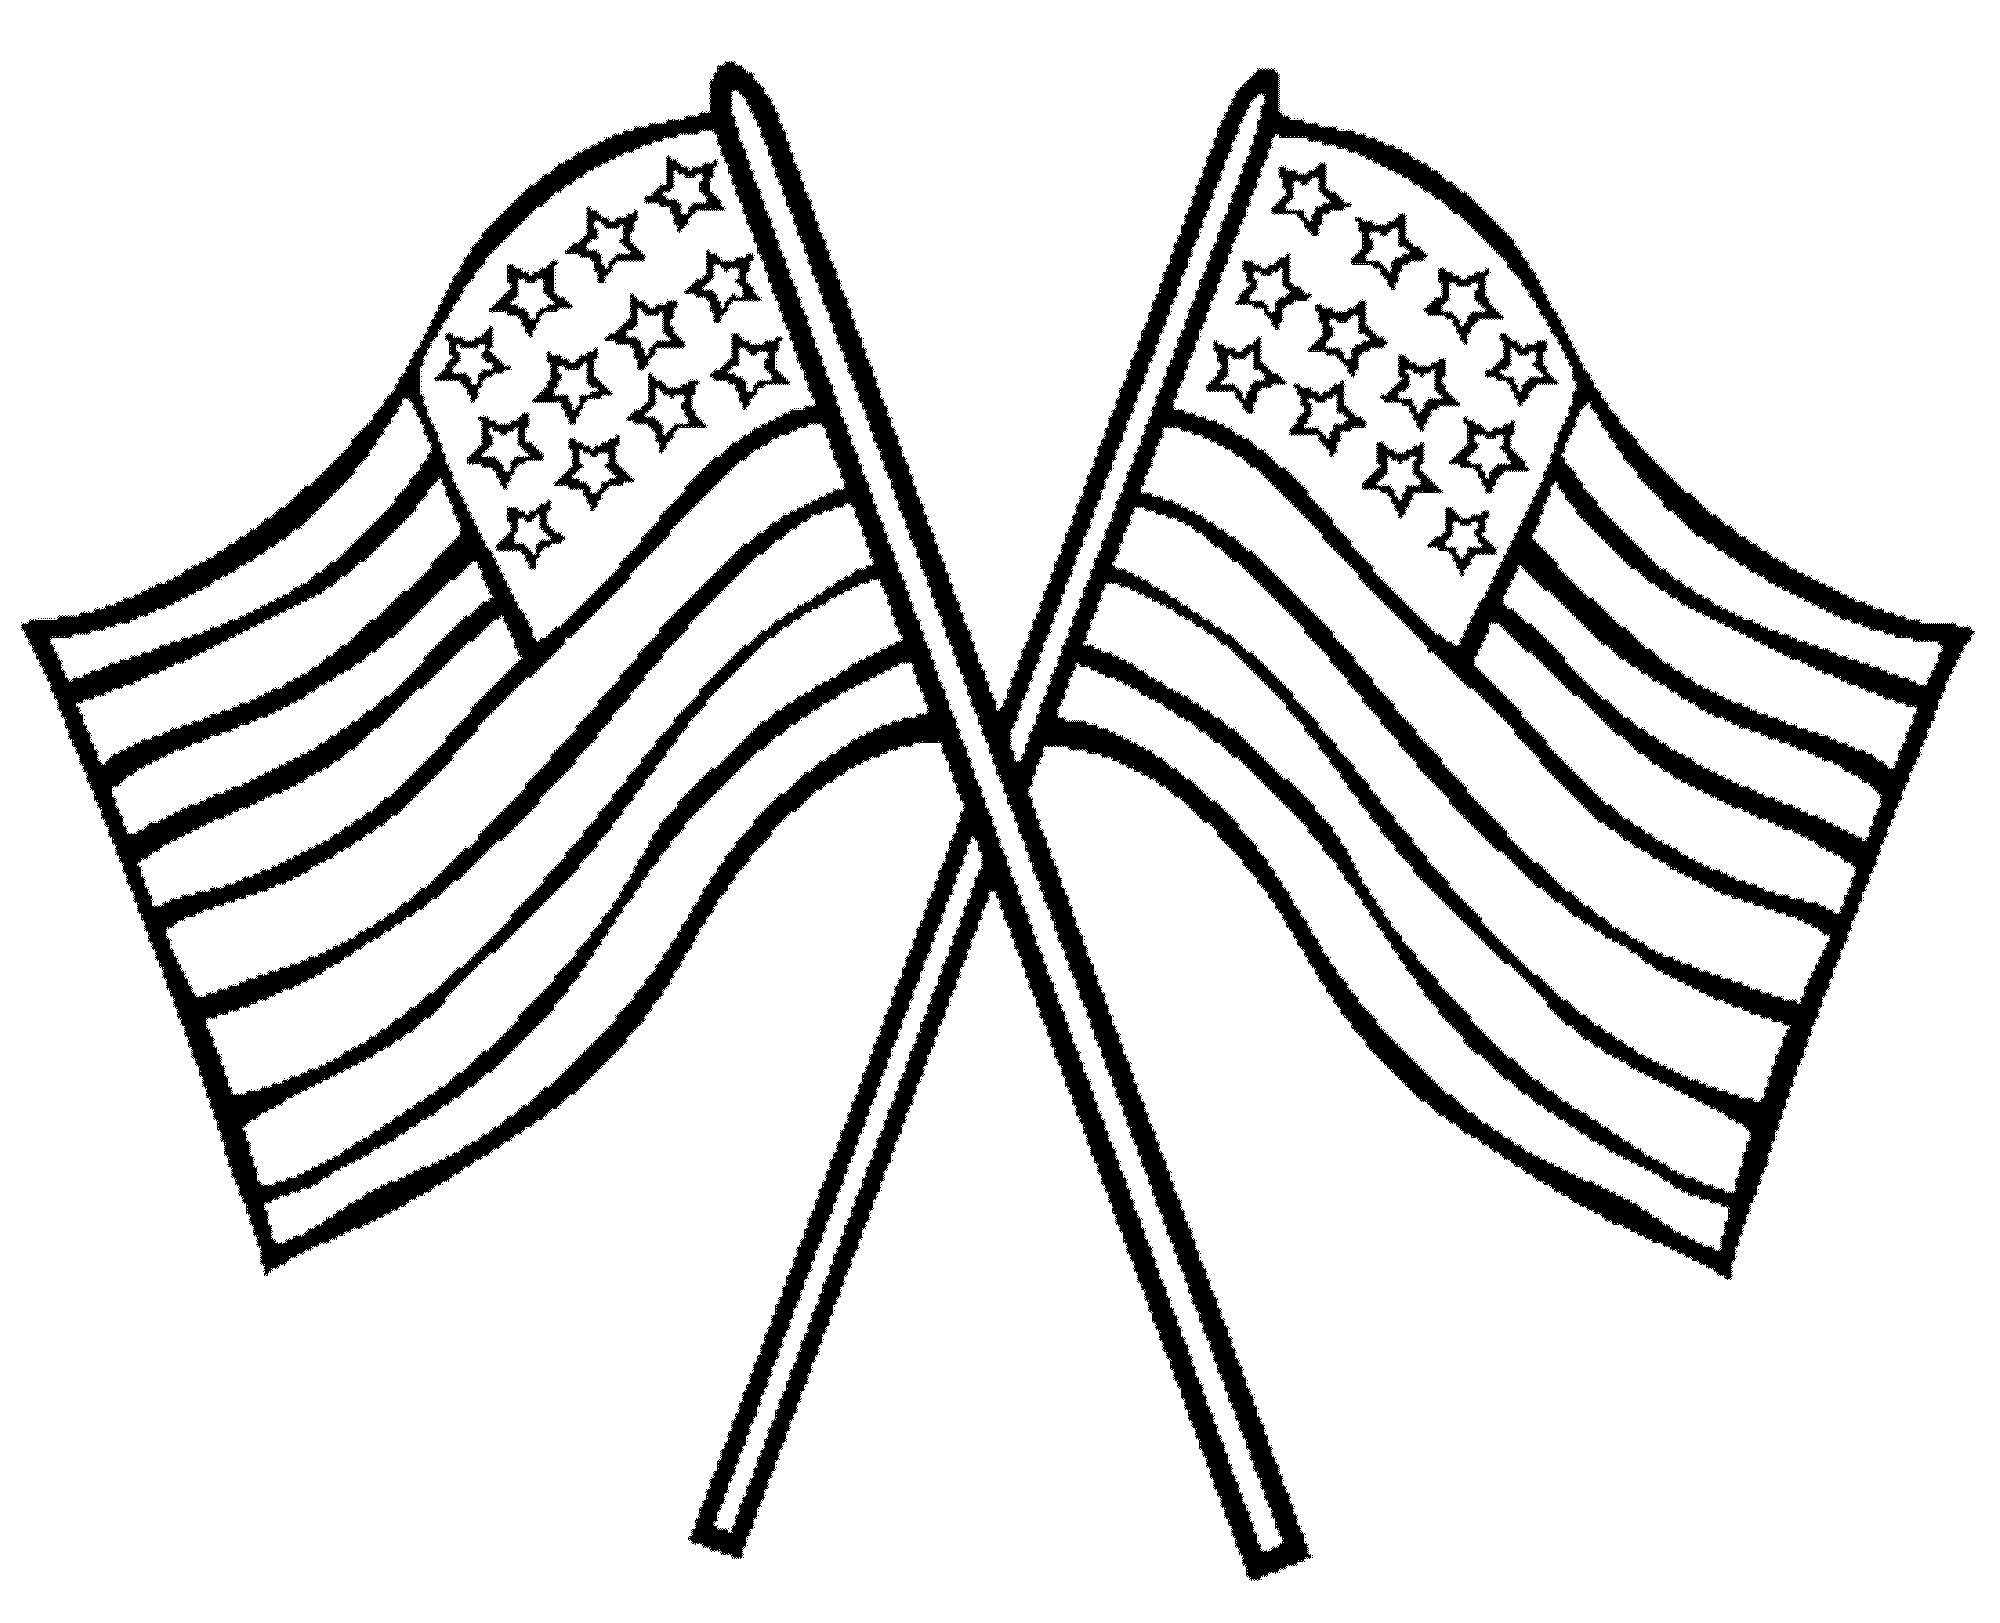 american flag coloring pages american flag coloring page for the love of the country american pages flag coloring